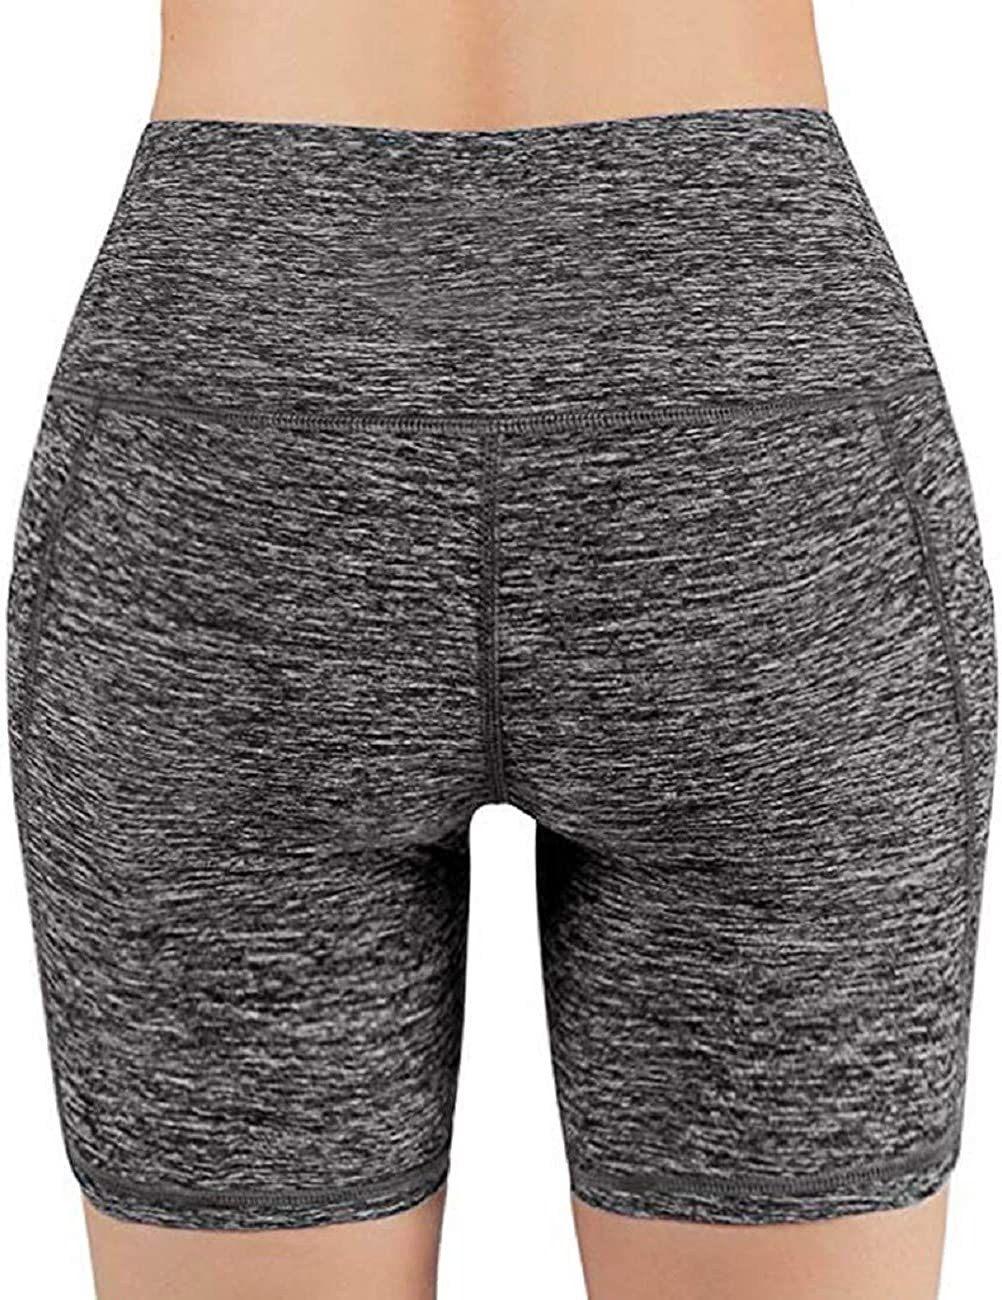 Tsmile Women High Waist Tummy Control Yoga Pocket Shorts Stretchy Quick Dry Training Running Athletic Pants